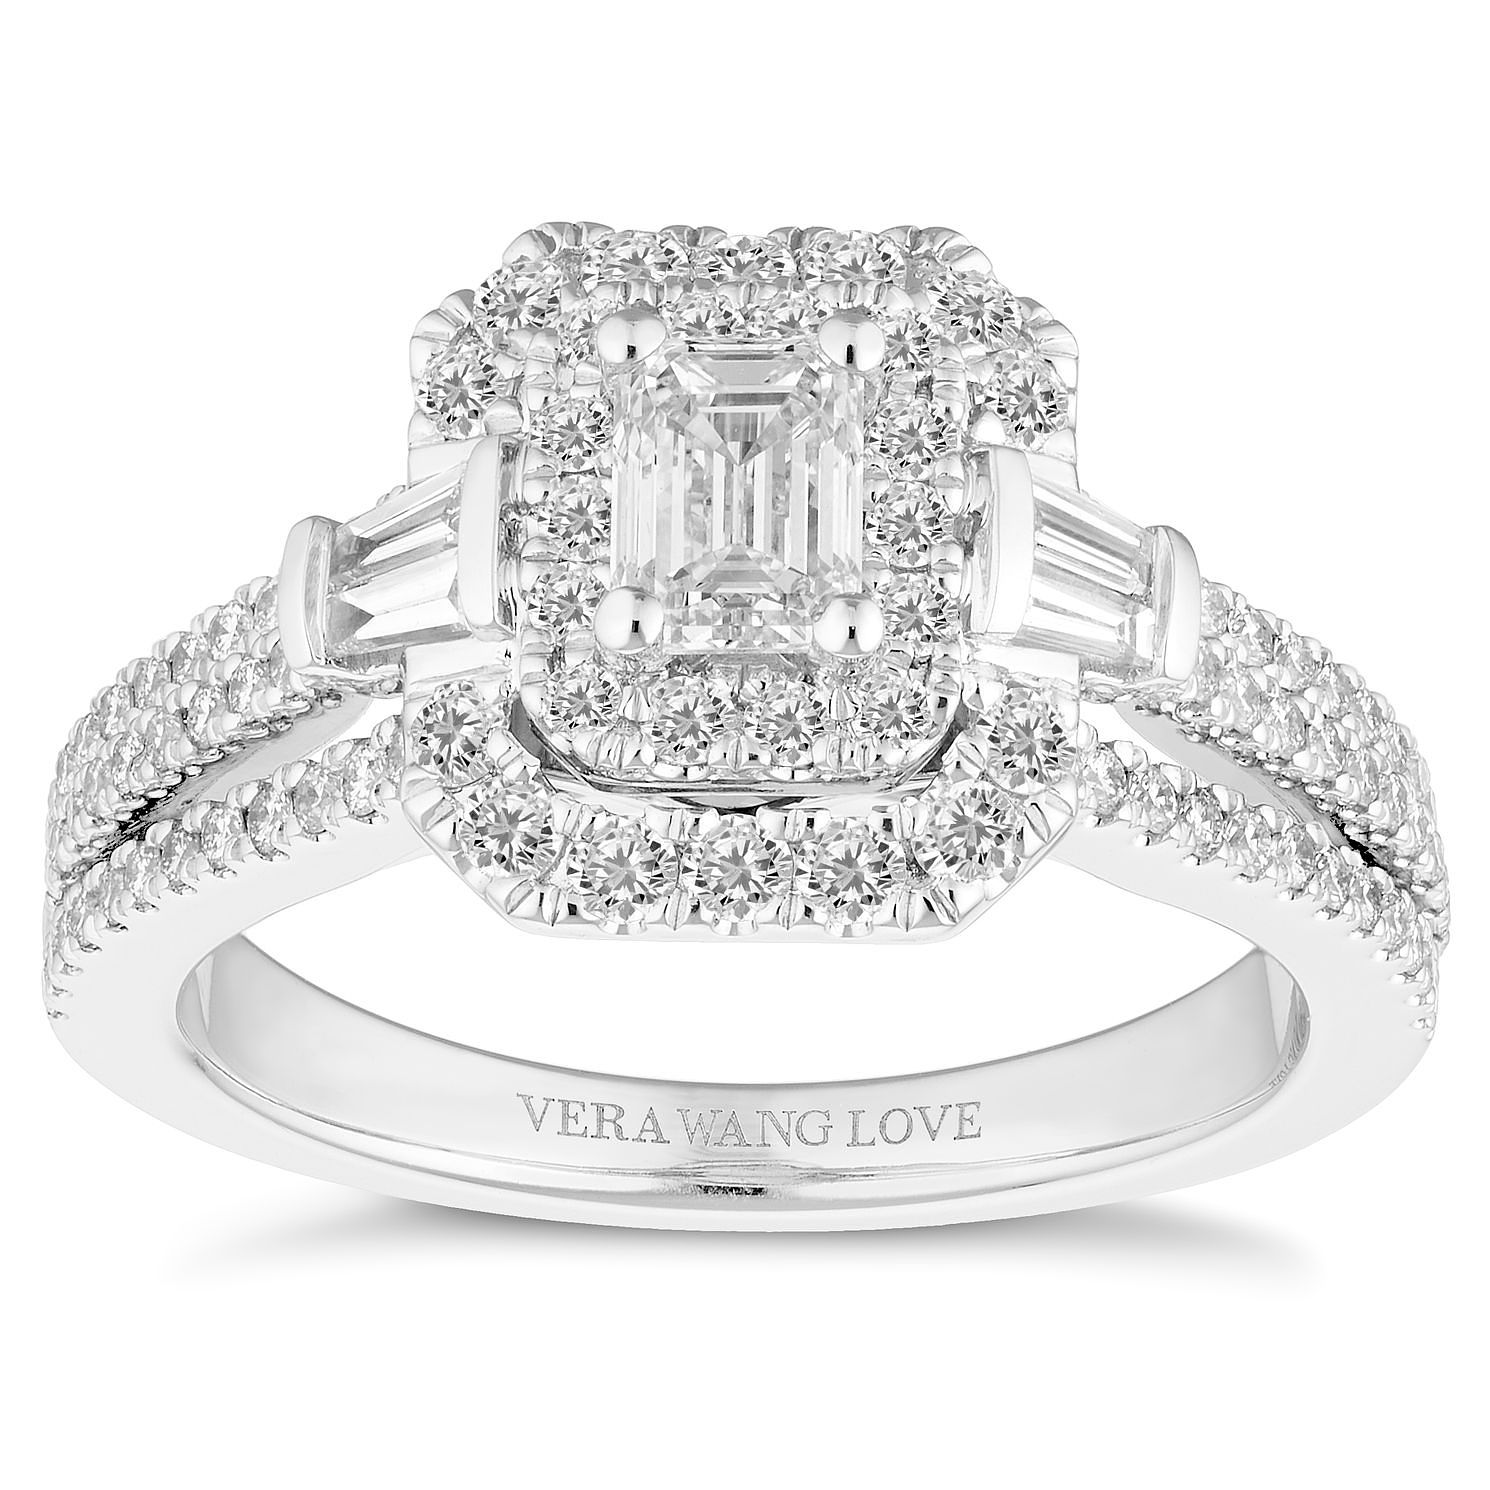 Vera Wang Platinum 1.18ct Diamond Emerald Cut Ring - Product number 2183471